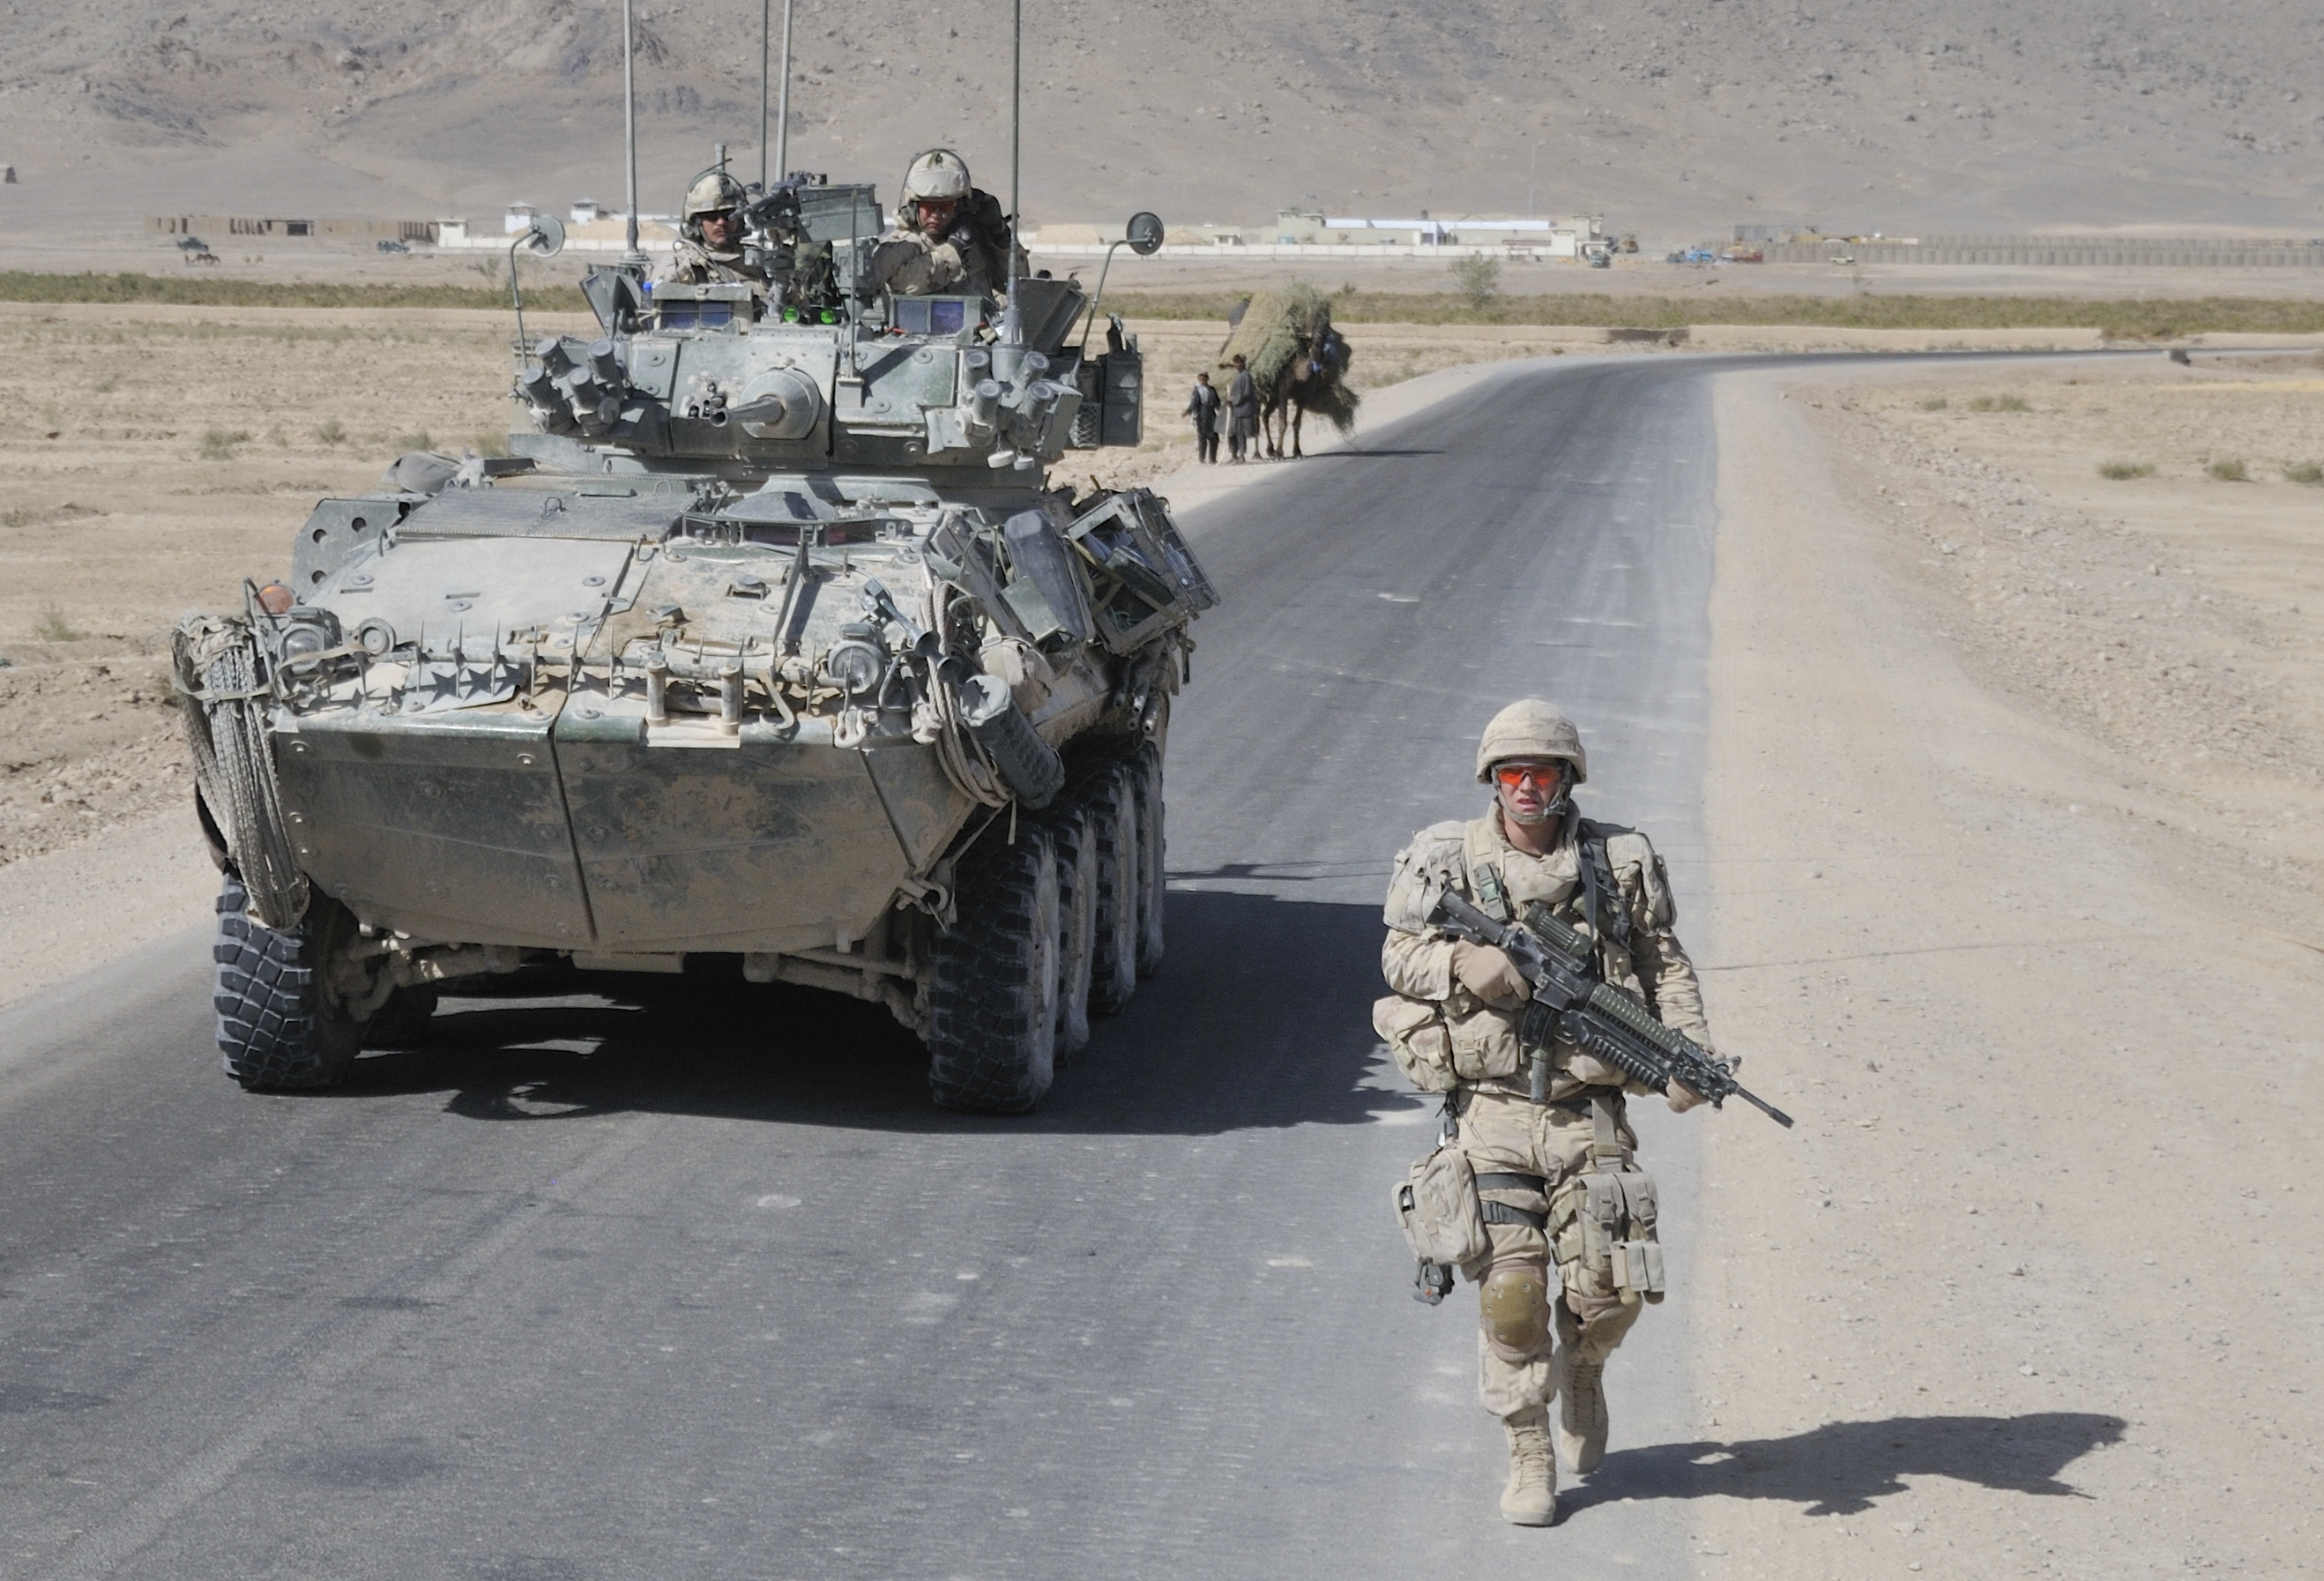 Corporal Rich Varey, Reconnaissance Squadron, the Royal Canadian Dragoons attached to 1st Battalion, The Royal Canadian Regiment Battle Group, walks alongside a COYOTE armoured reconnaissance vehicle, in the Panjwa'i District of Kandahar Province. Photo by: Corporal Shilo Adamson, Canadian Forces Combat Camera. ©2010 DND-MDN Canada.